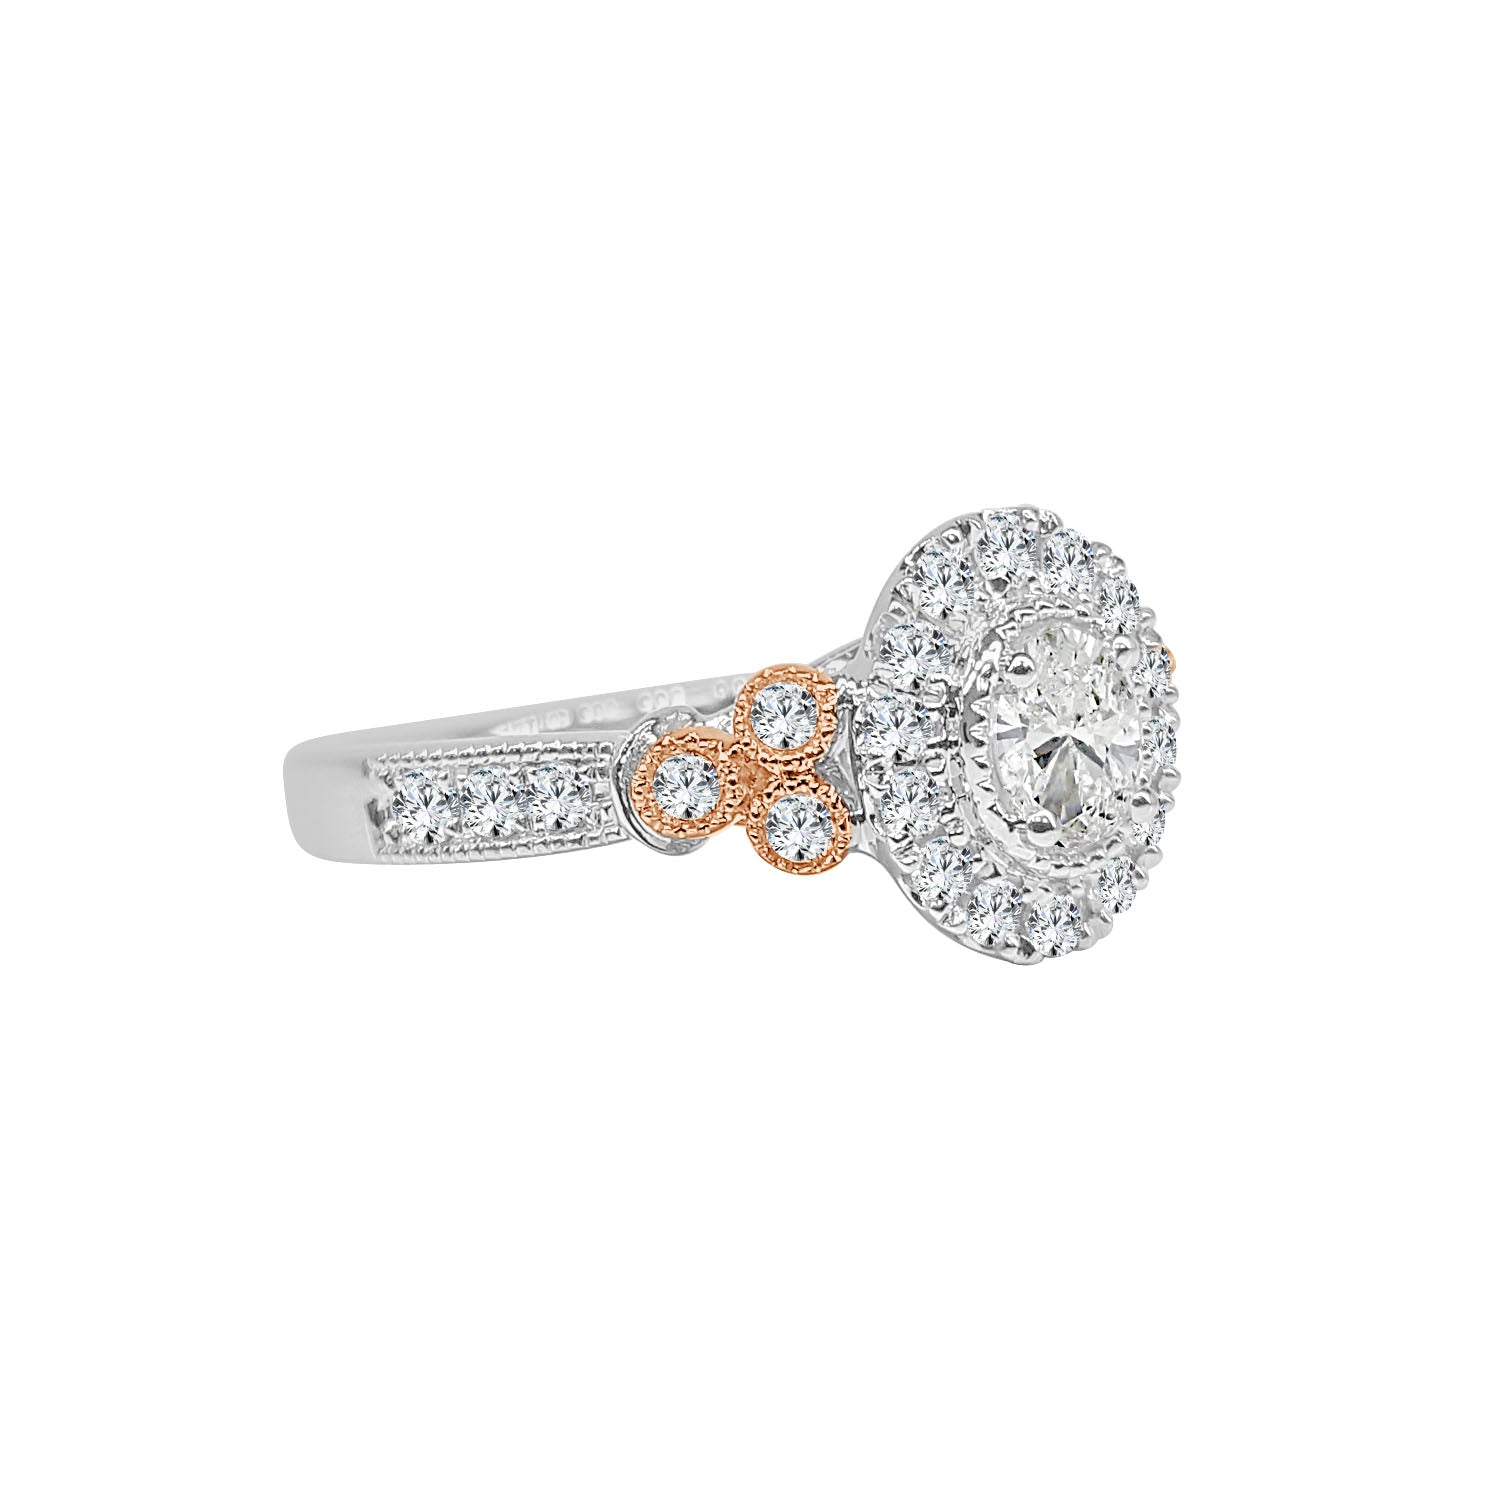 Oval Diamond Ring With Rose Gold Diamond Accents